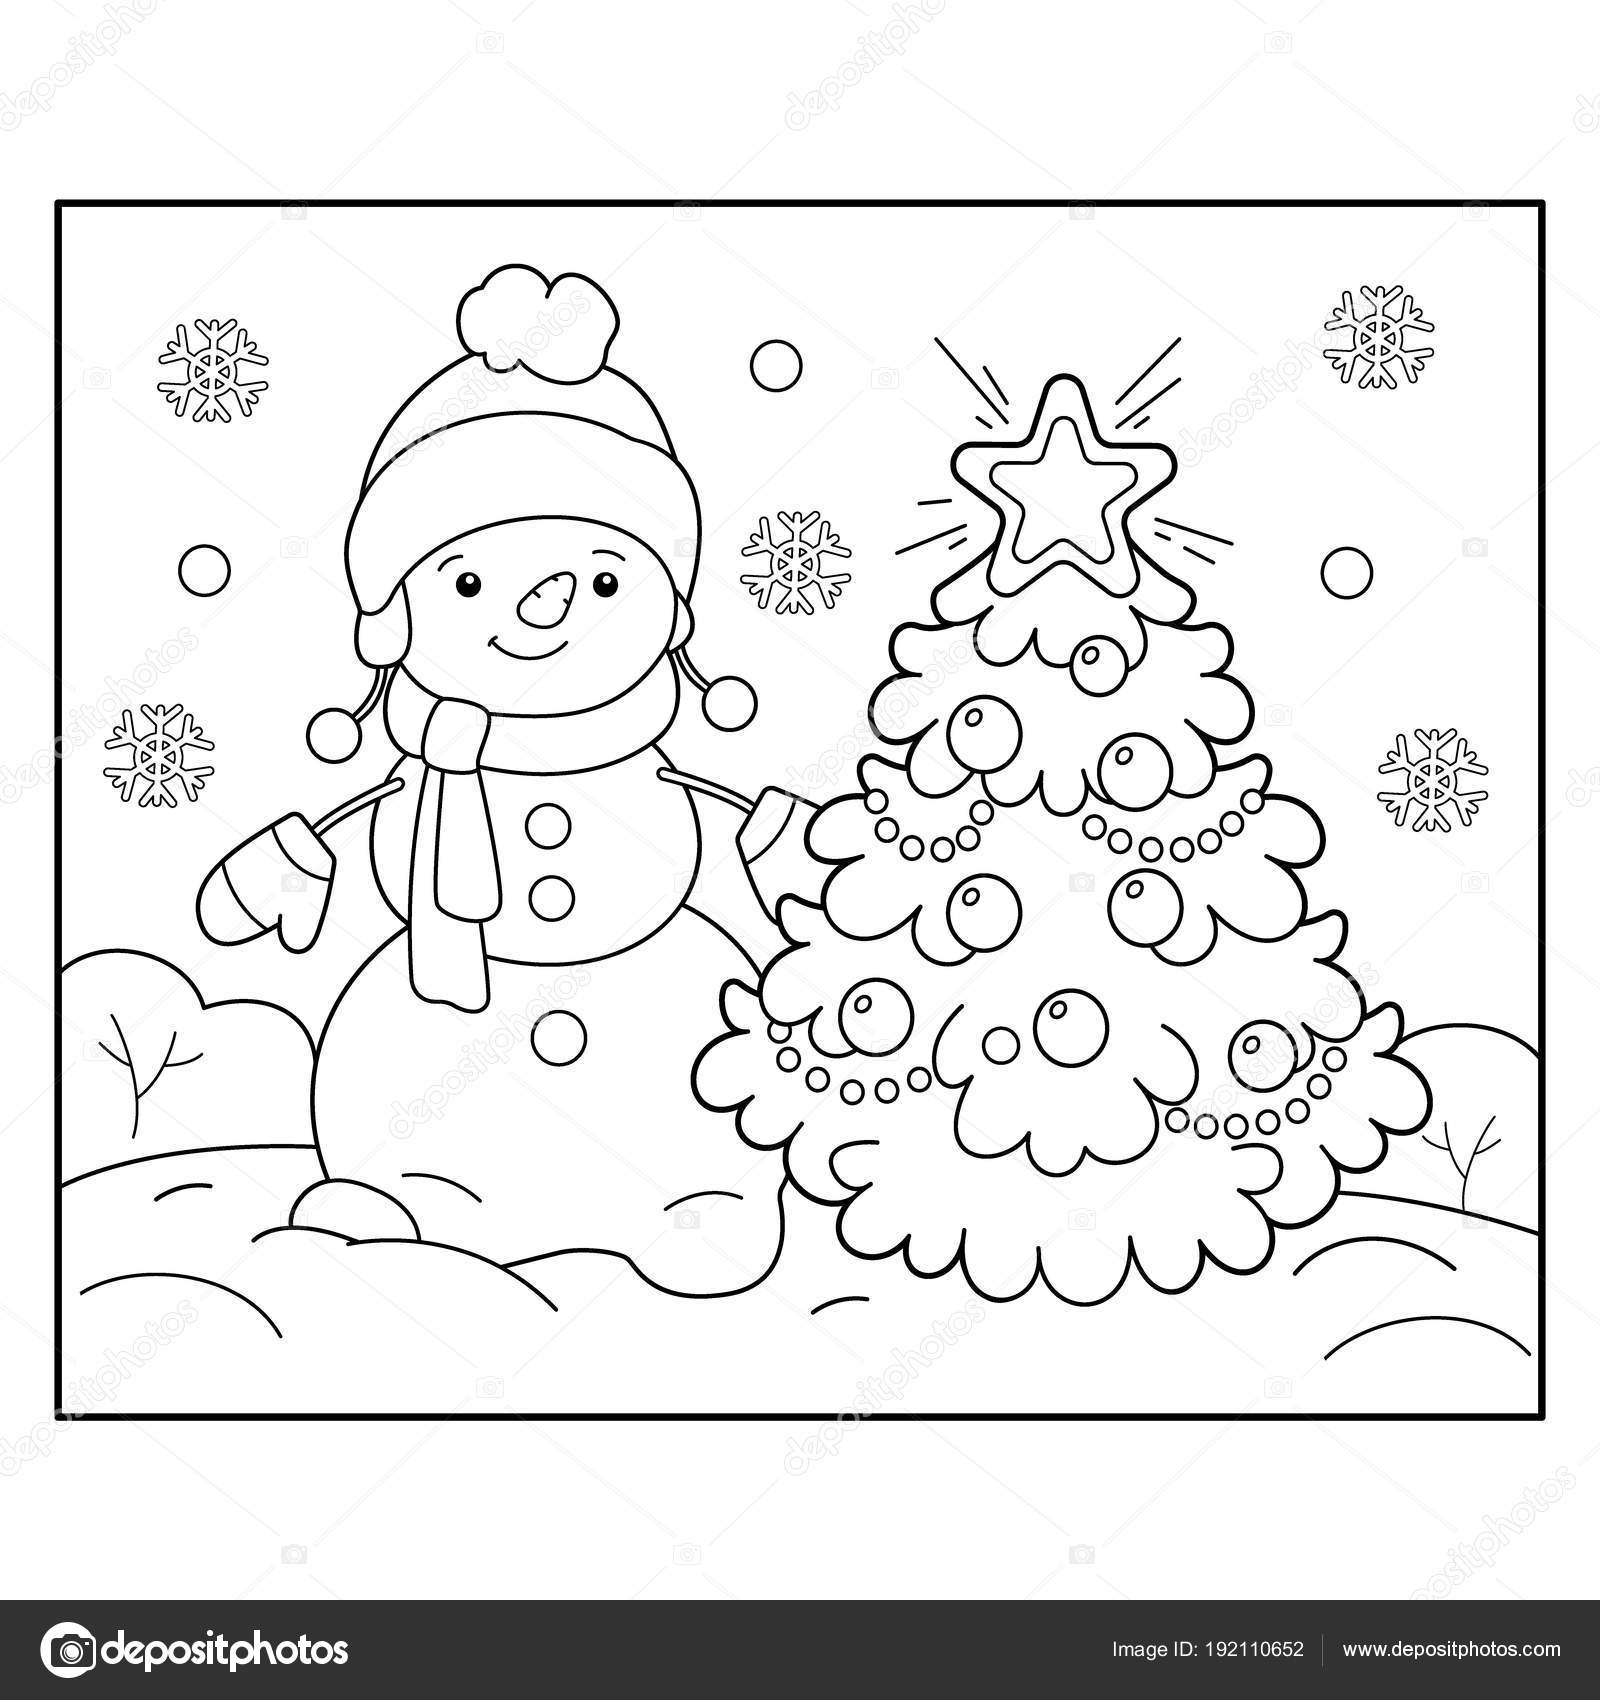 Coloring Page Outline Of snowman with Christmas tree. Christmas. New ...